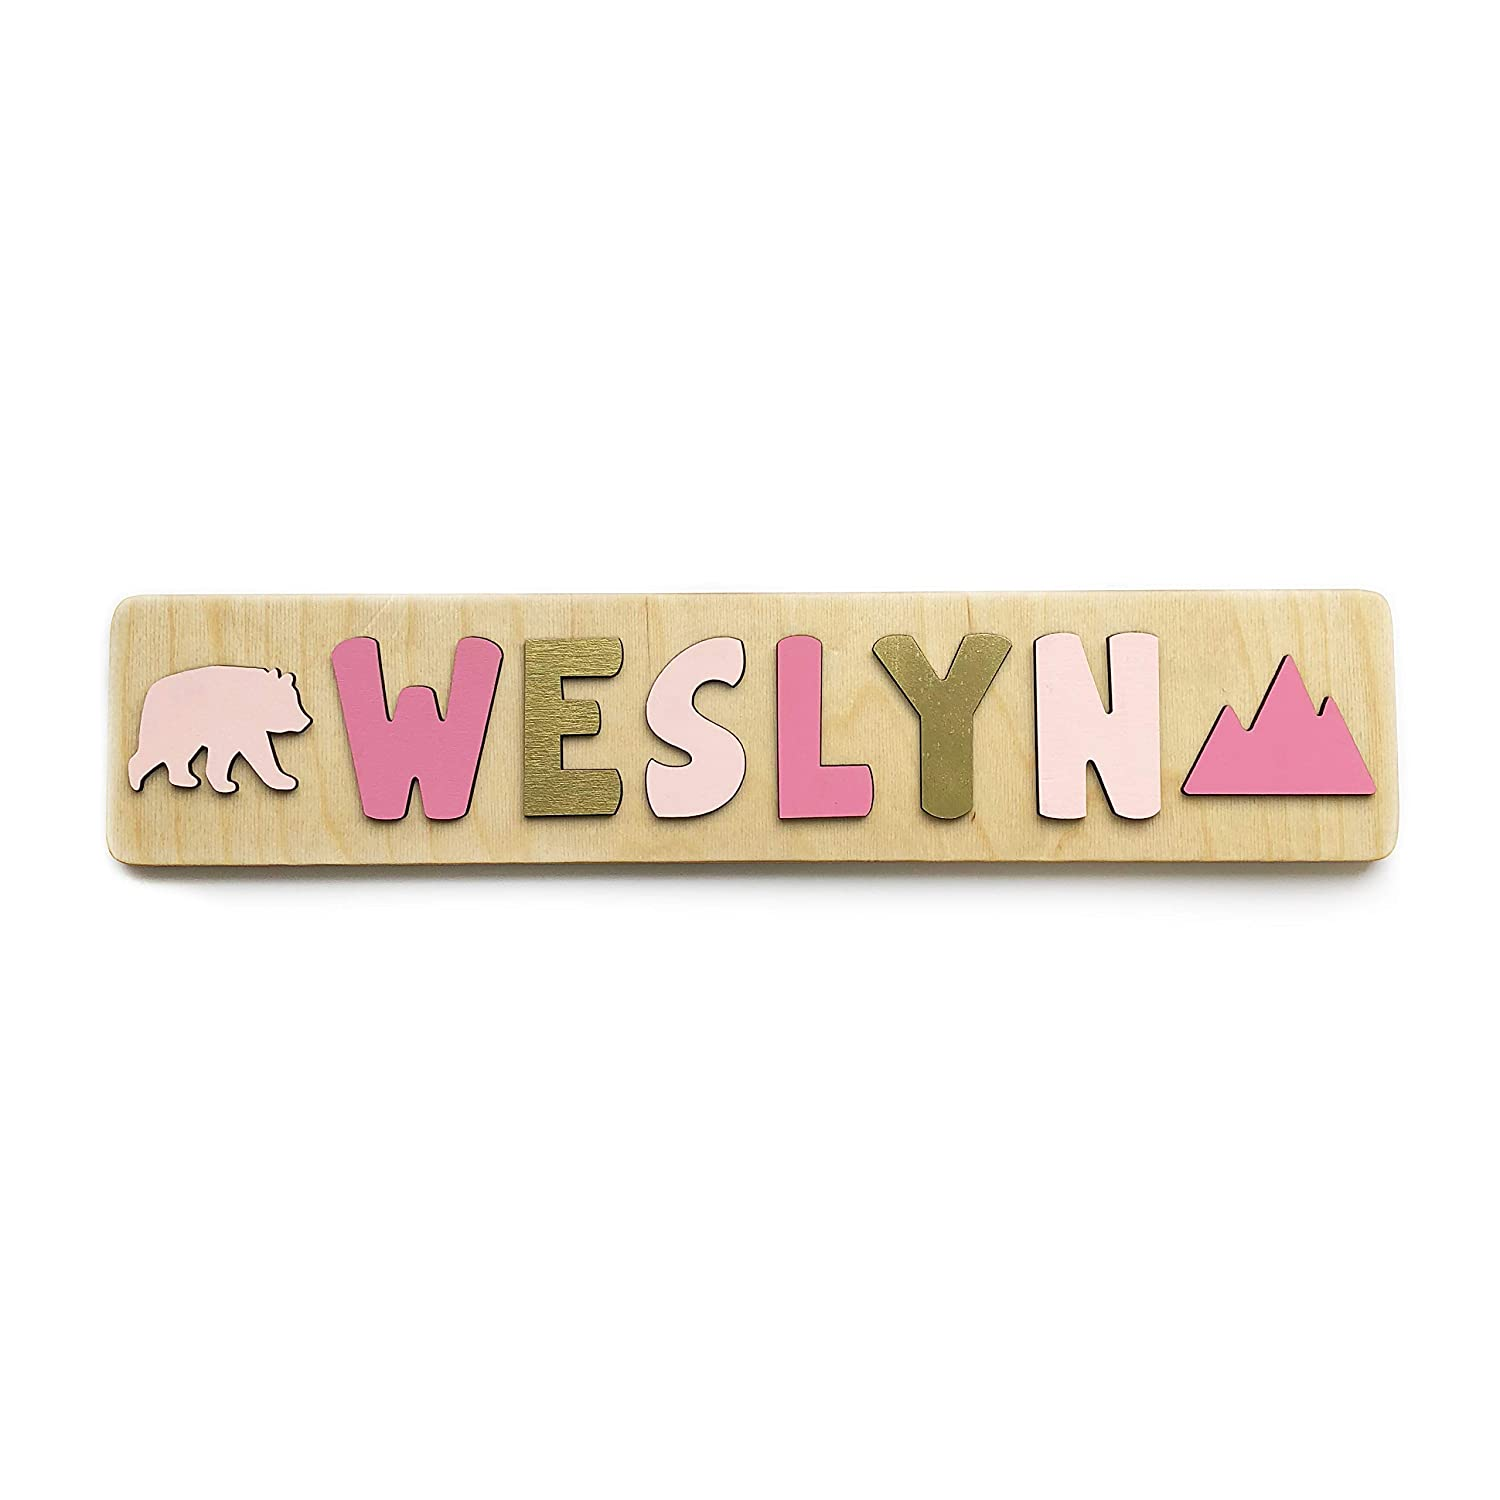 B07KJWRGVN Personalized Wooden Name Puzzle for Toddler Girls, Christmas or Birthday Gift for One and Two Year Olds, Handmade in the USA by Page Brook Market 71yGFhRhrsL